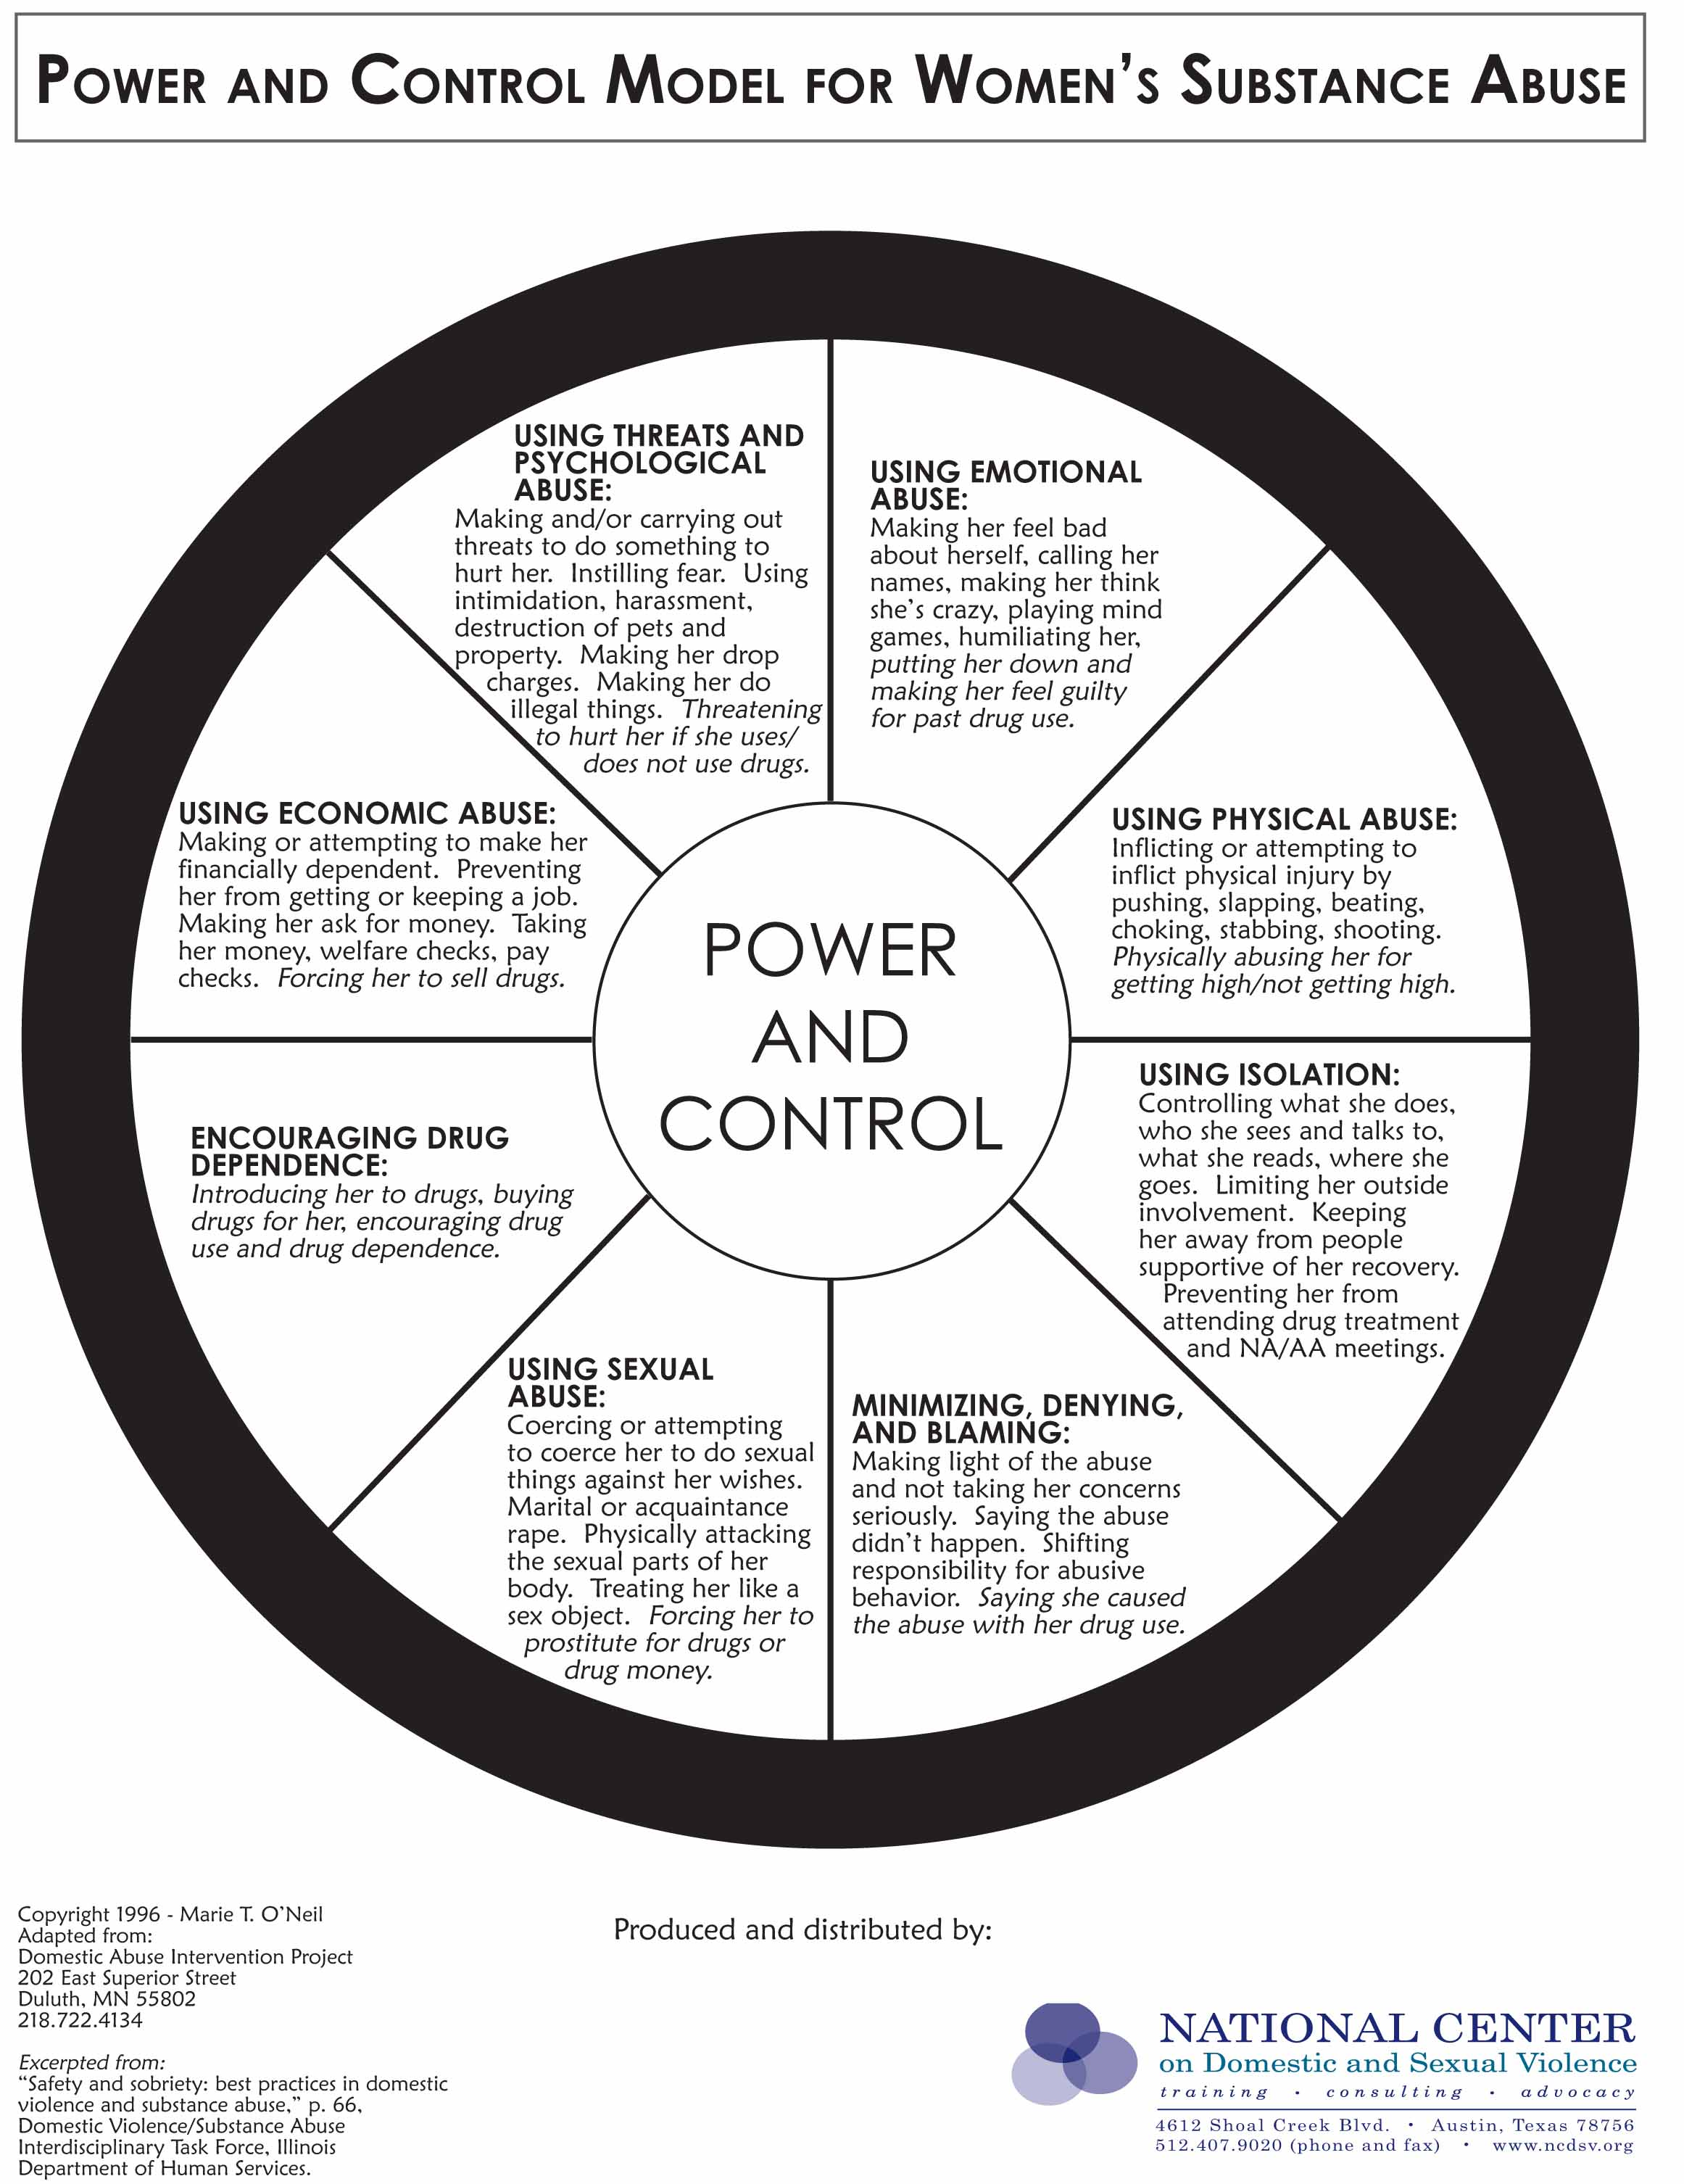 2010 girls women alcohol and pregnancy page 2 power and control model for women s substance abuse copyright © 1996 marie t o neil adapted from the power and control wheel developed by the domestic